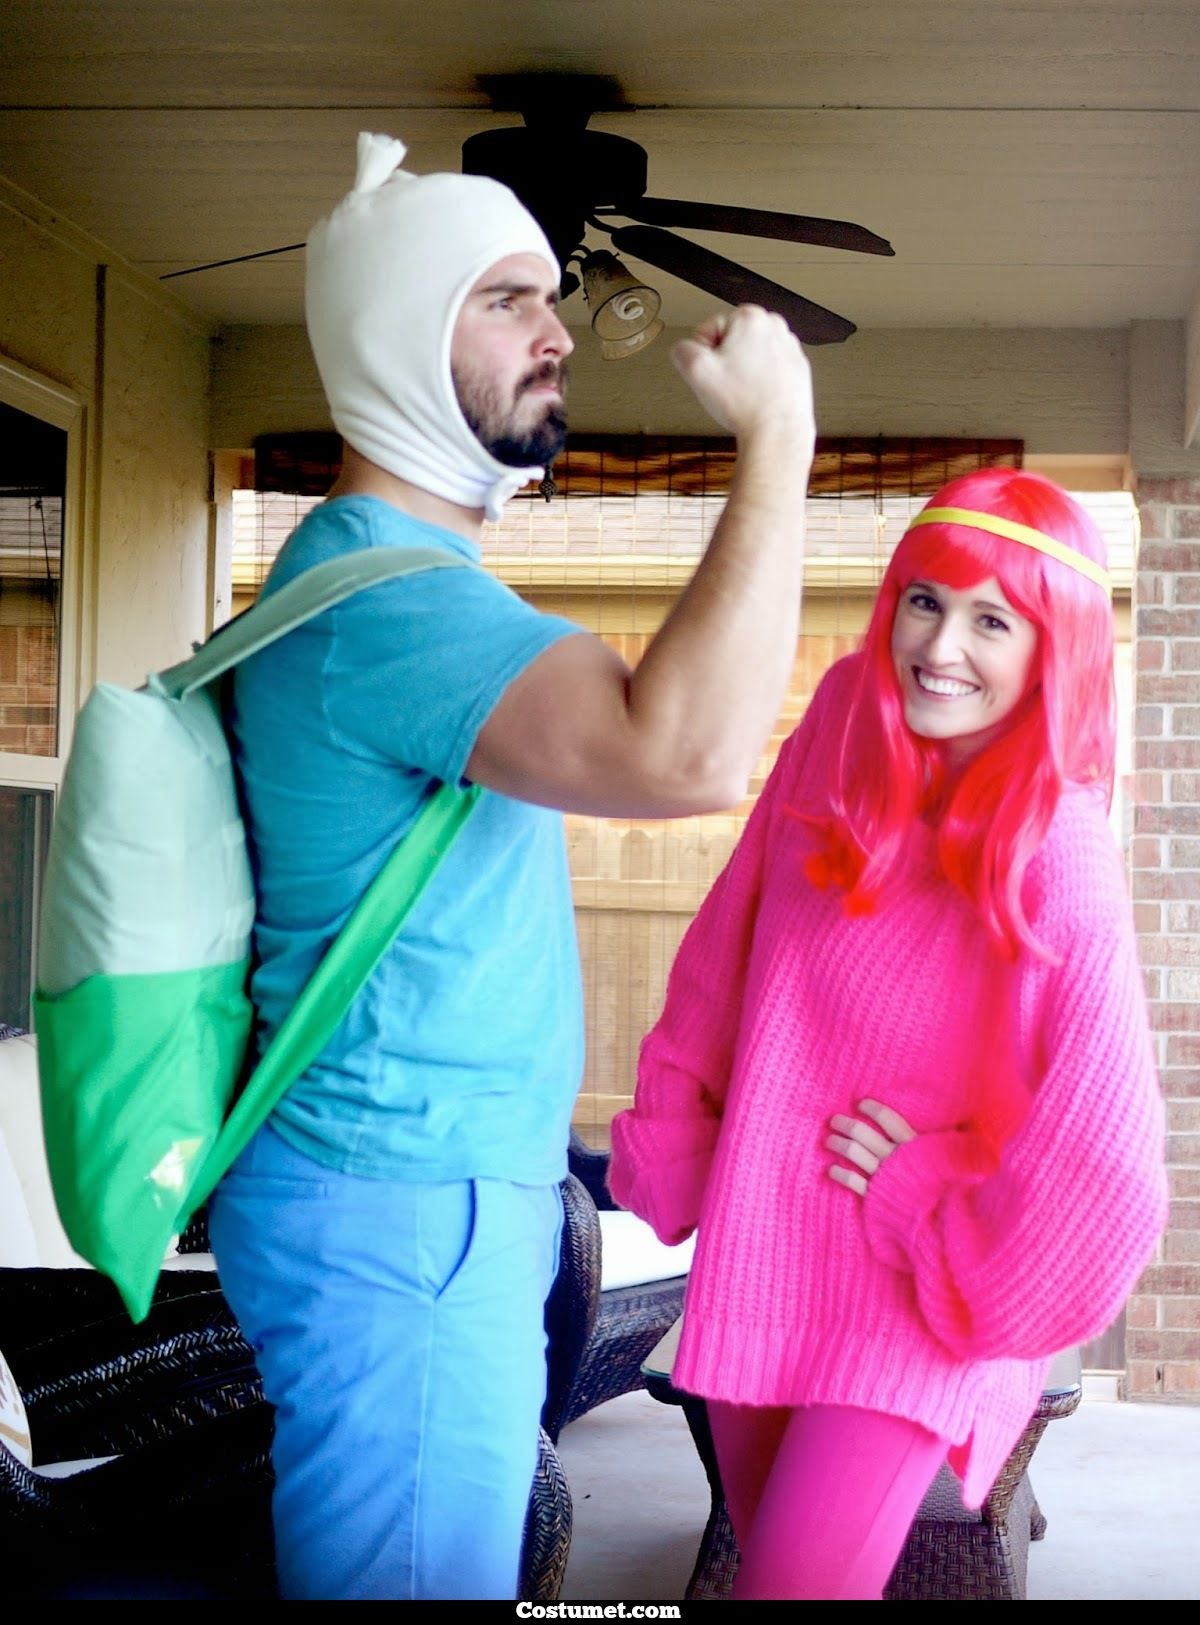 it's time to find your two-ears hat and become finn the human from